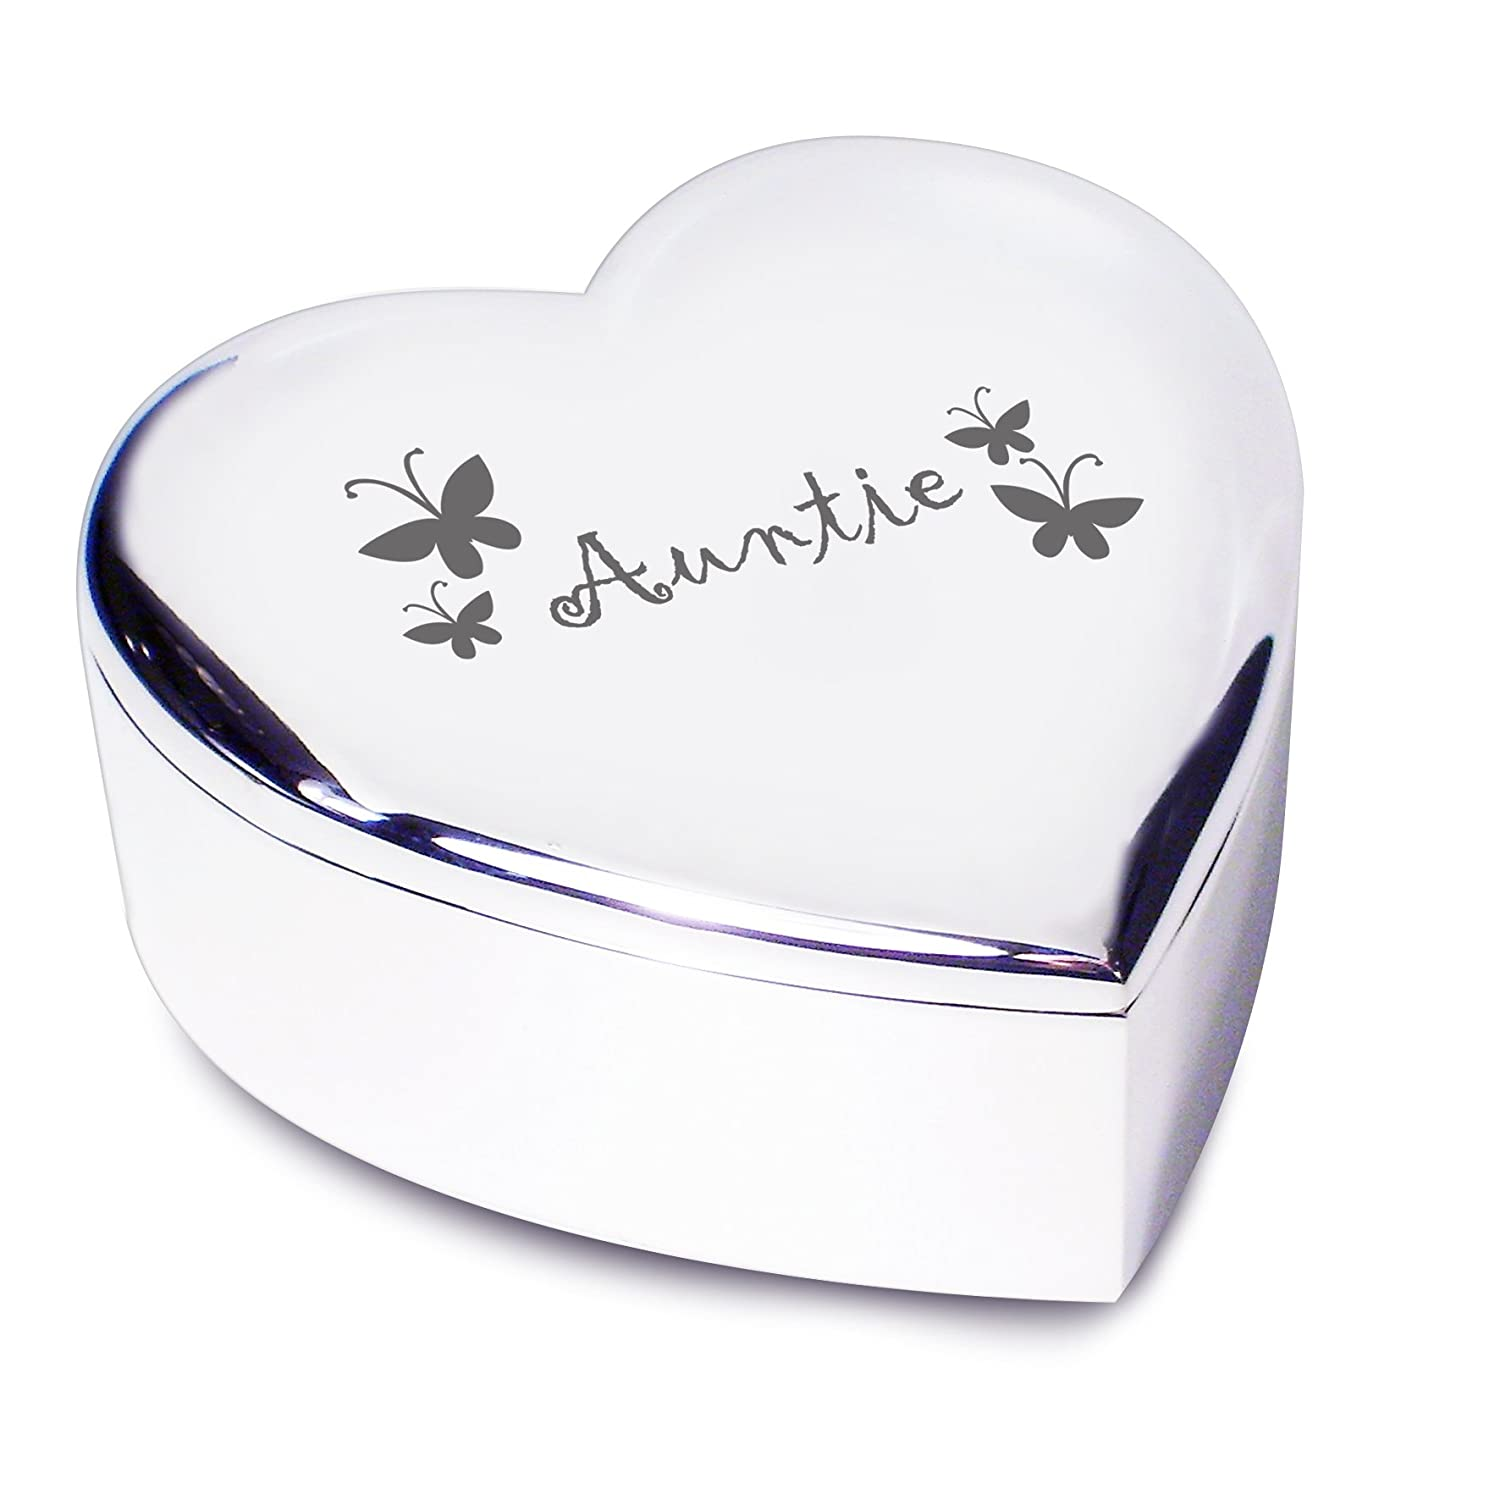 Auntie Heart Trinket. Ideal gifts and presents for weddings, Christenings, Birthdays, Christmas etc… Christmas etc...